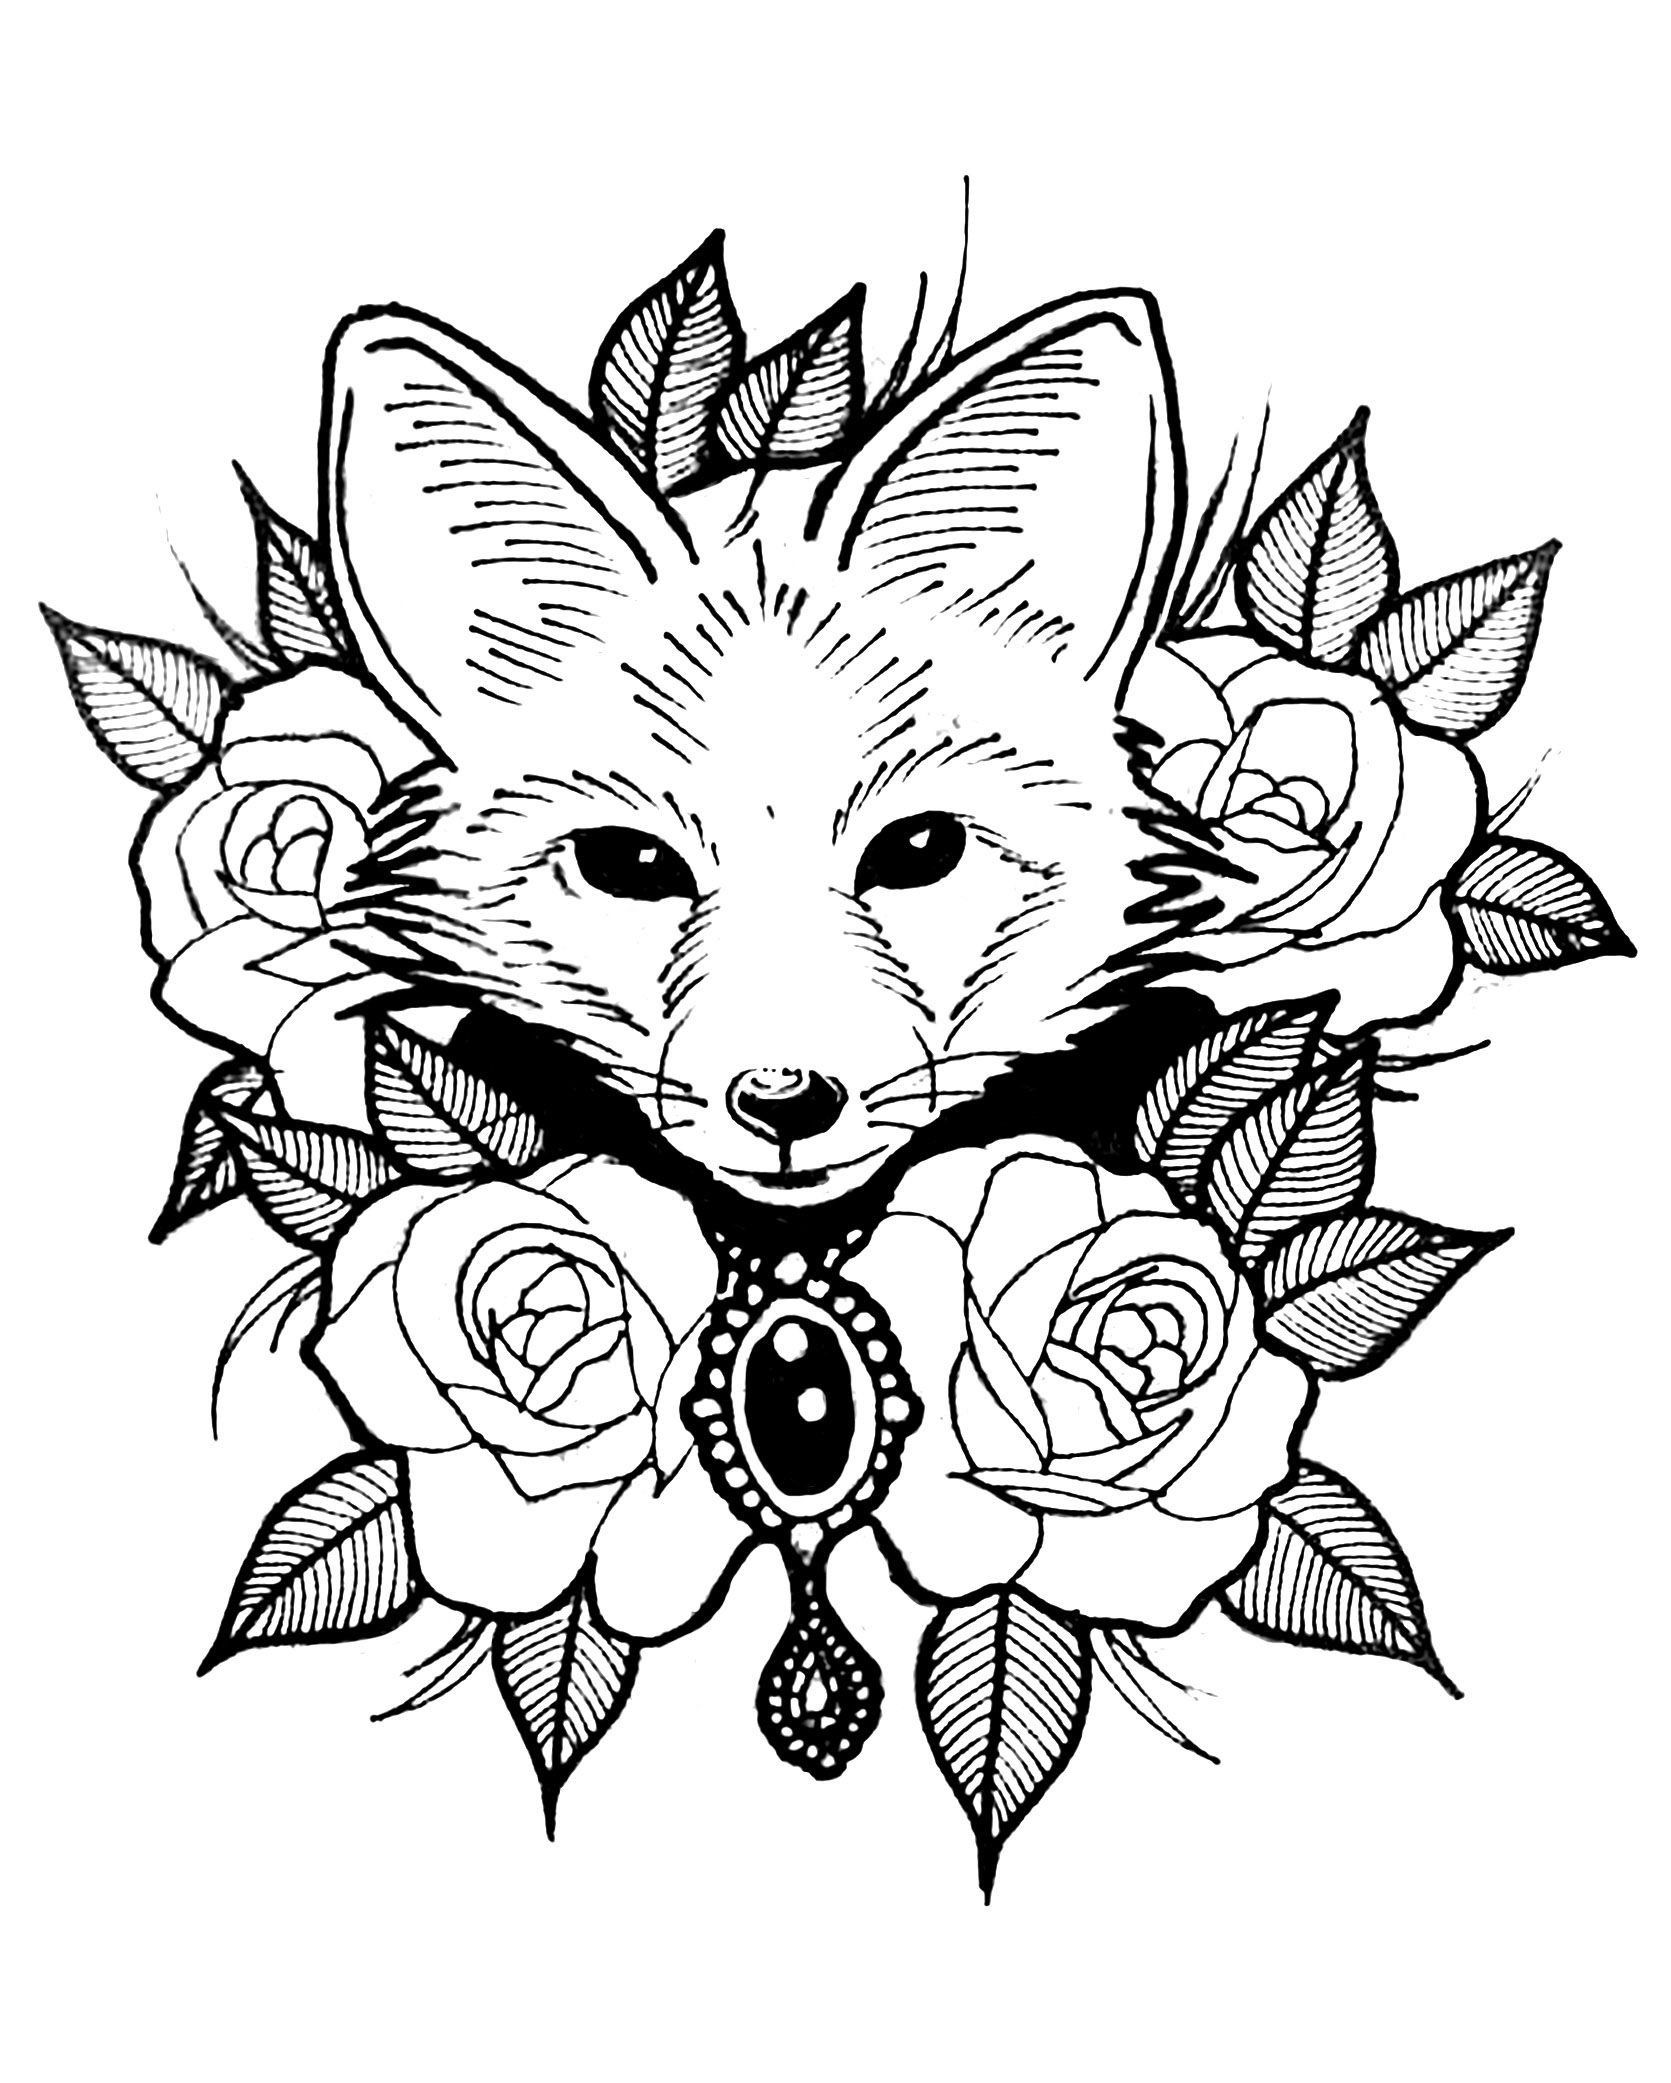 Realistic Fox Coloring Pages Cute Fox With Roses Foxes Coloring Pages For Adults Just In 2020 Fox Coloring Page Zoo Animal Coloring Pages Animal Coloring Books